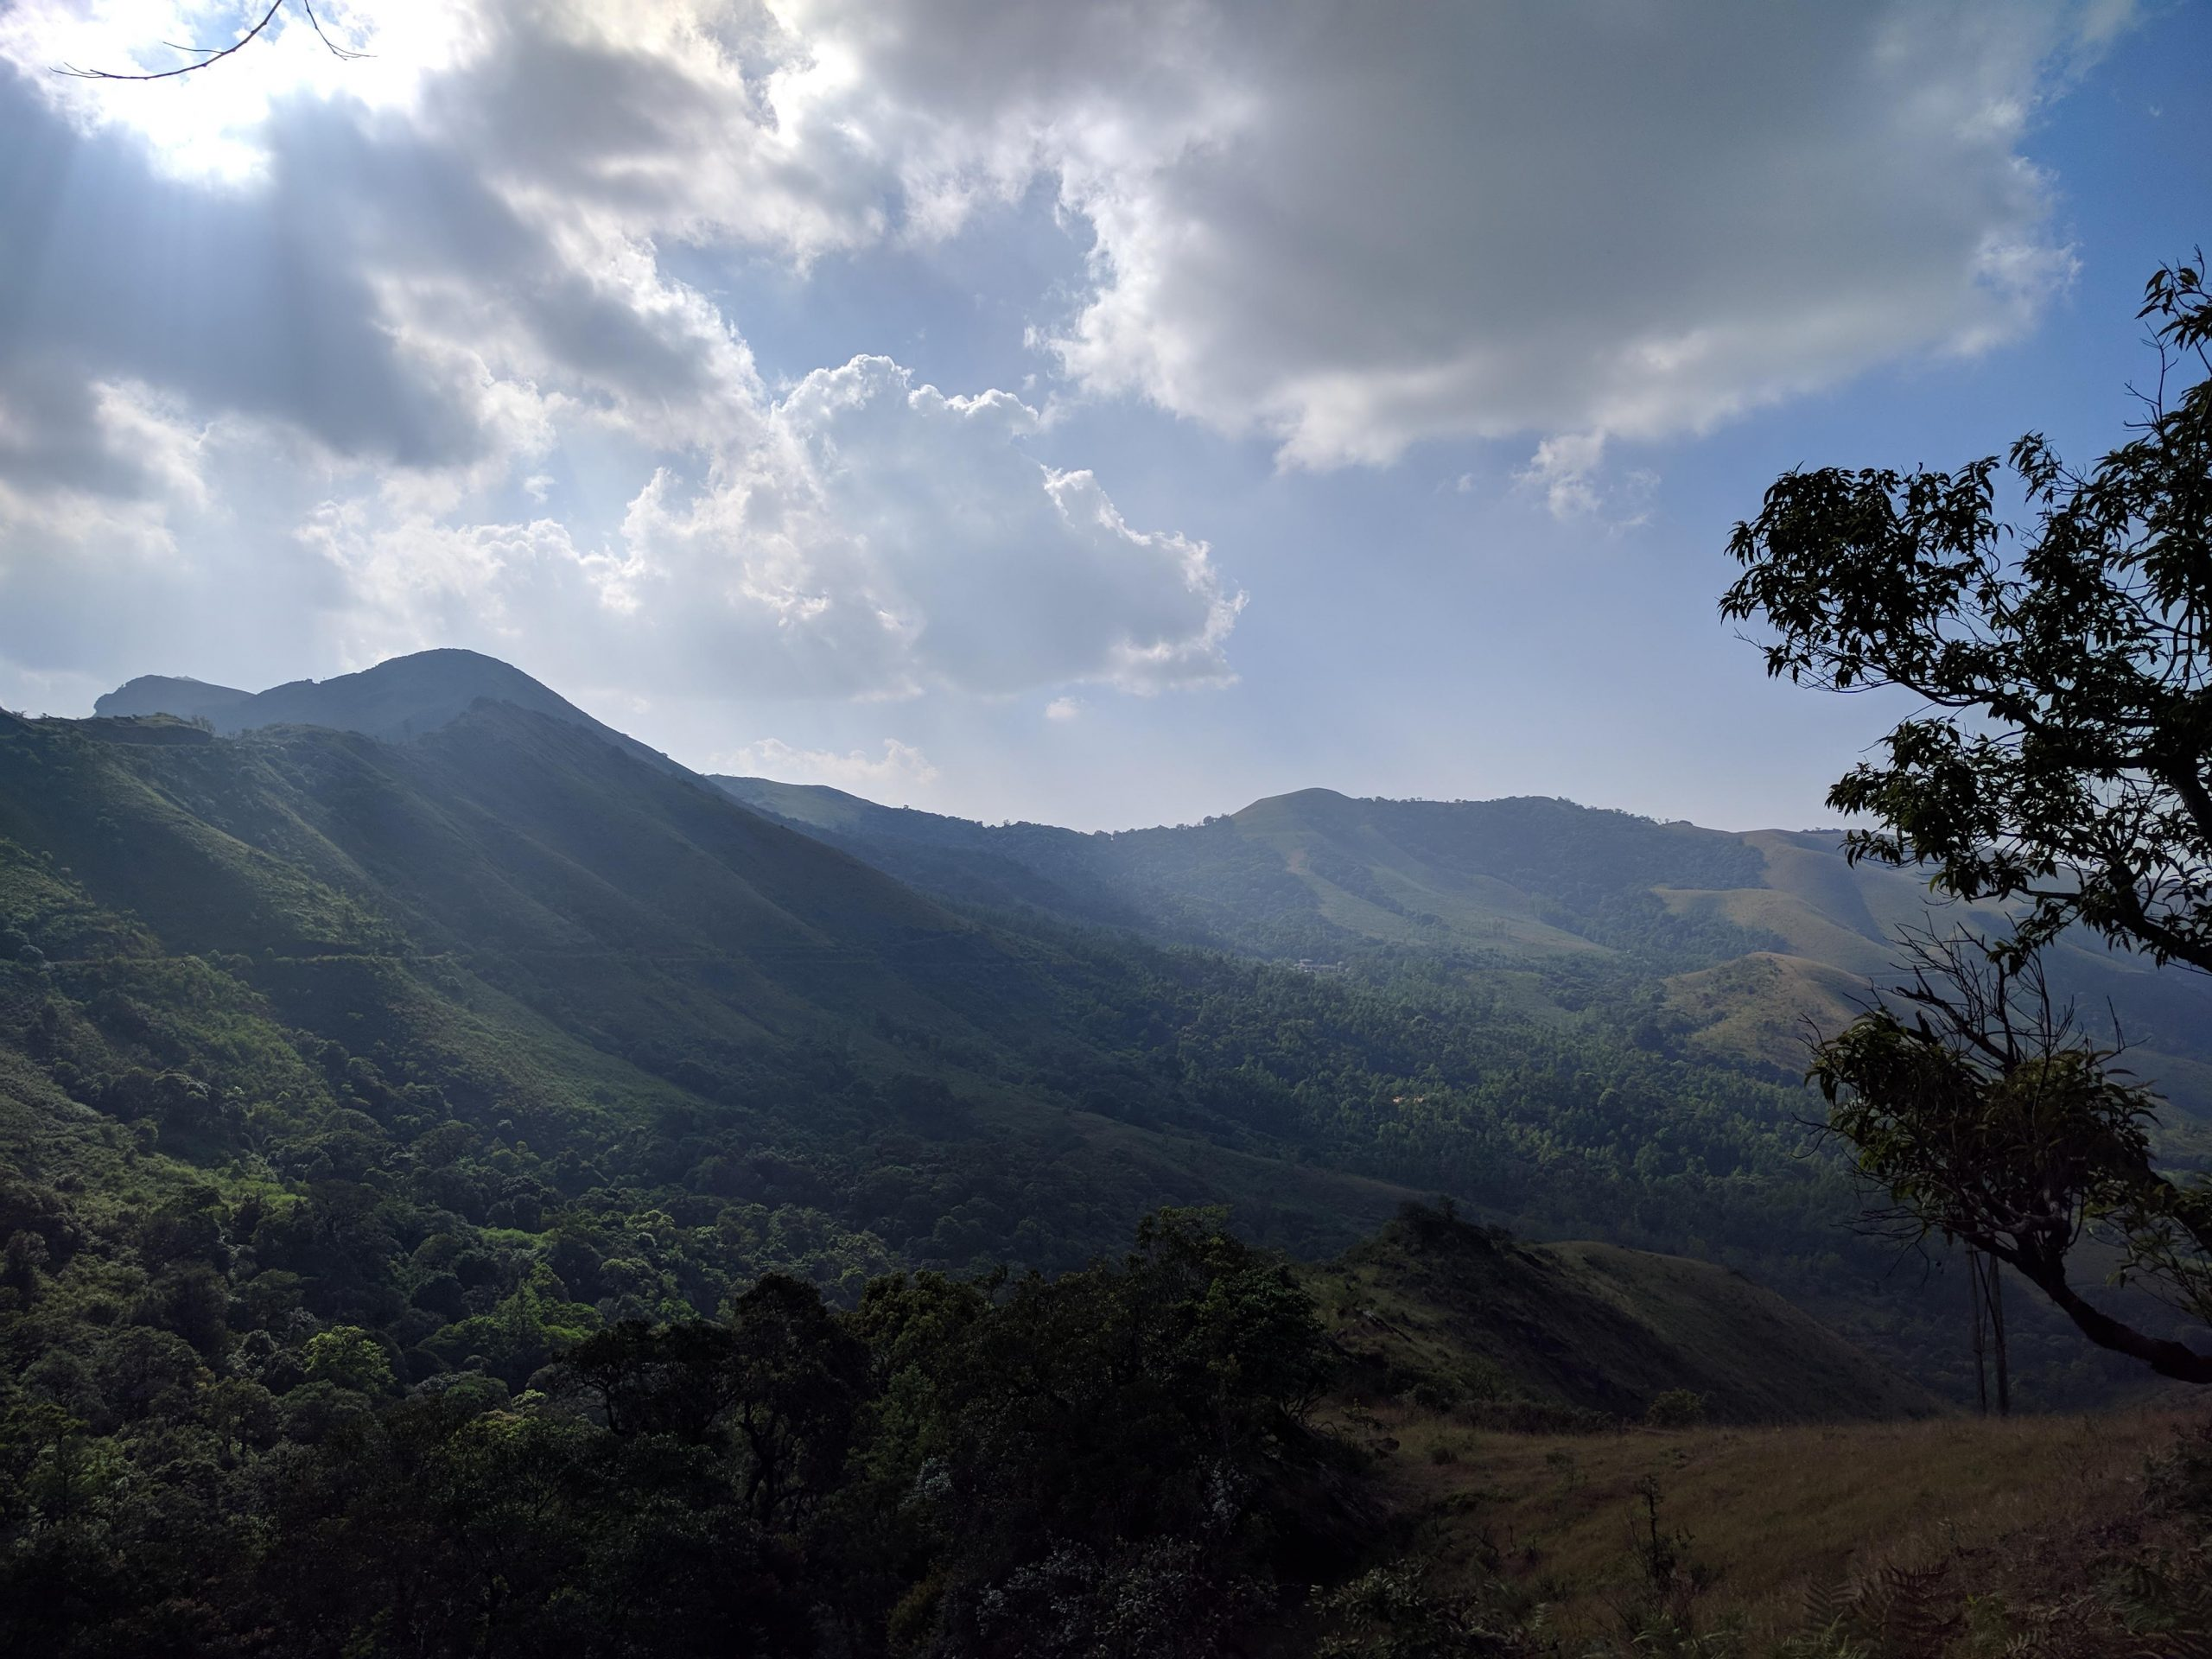 Mountains Scenery in Chikmagalur